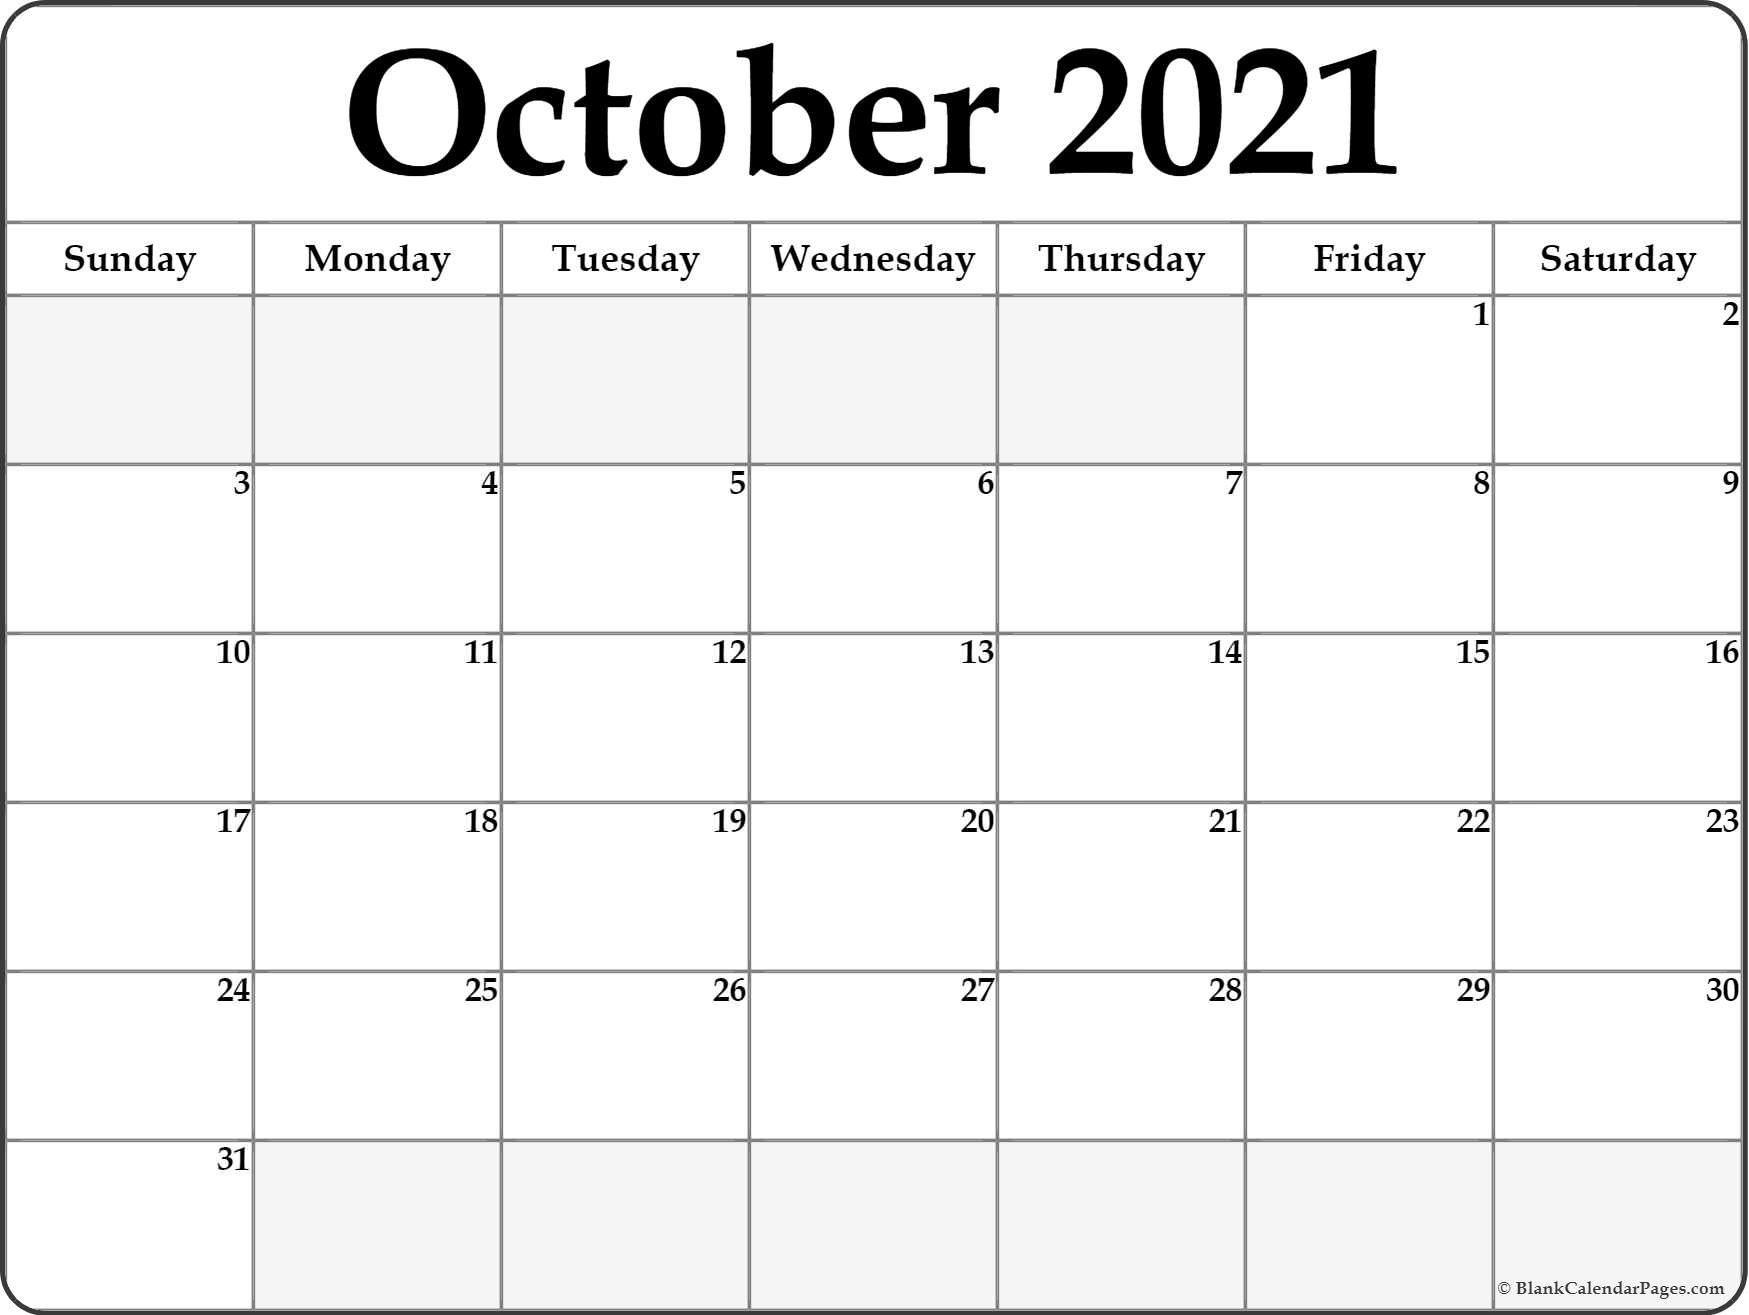 Blank October 2020 Calendar Printable October 2020 blank calendar templates.